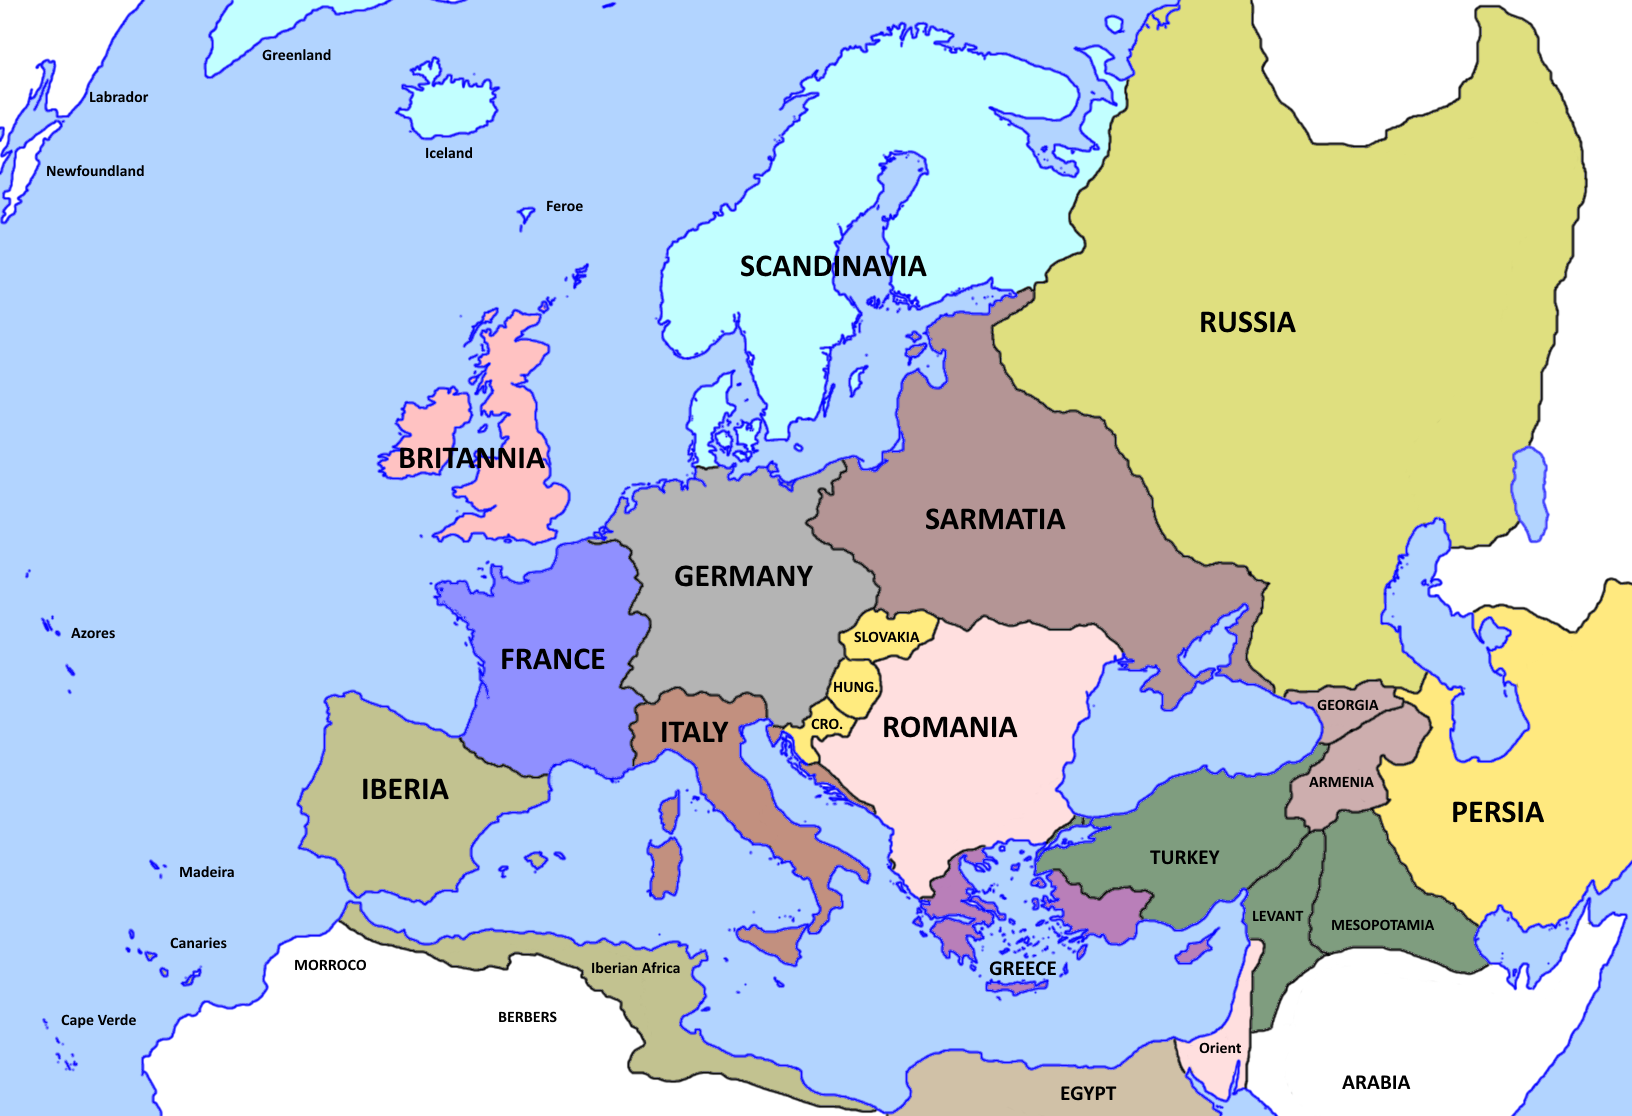 Io mihail mpratul romnilor a michael the brave romania wank the second european war post animated map summary of europes countries around 1650 post table administrative units of the romanian imperium post gumiabroncs Images